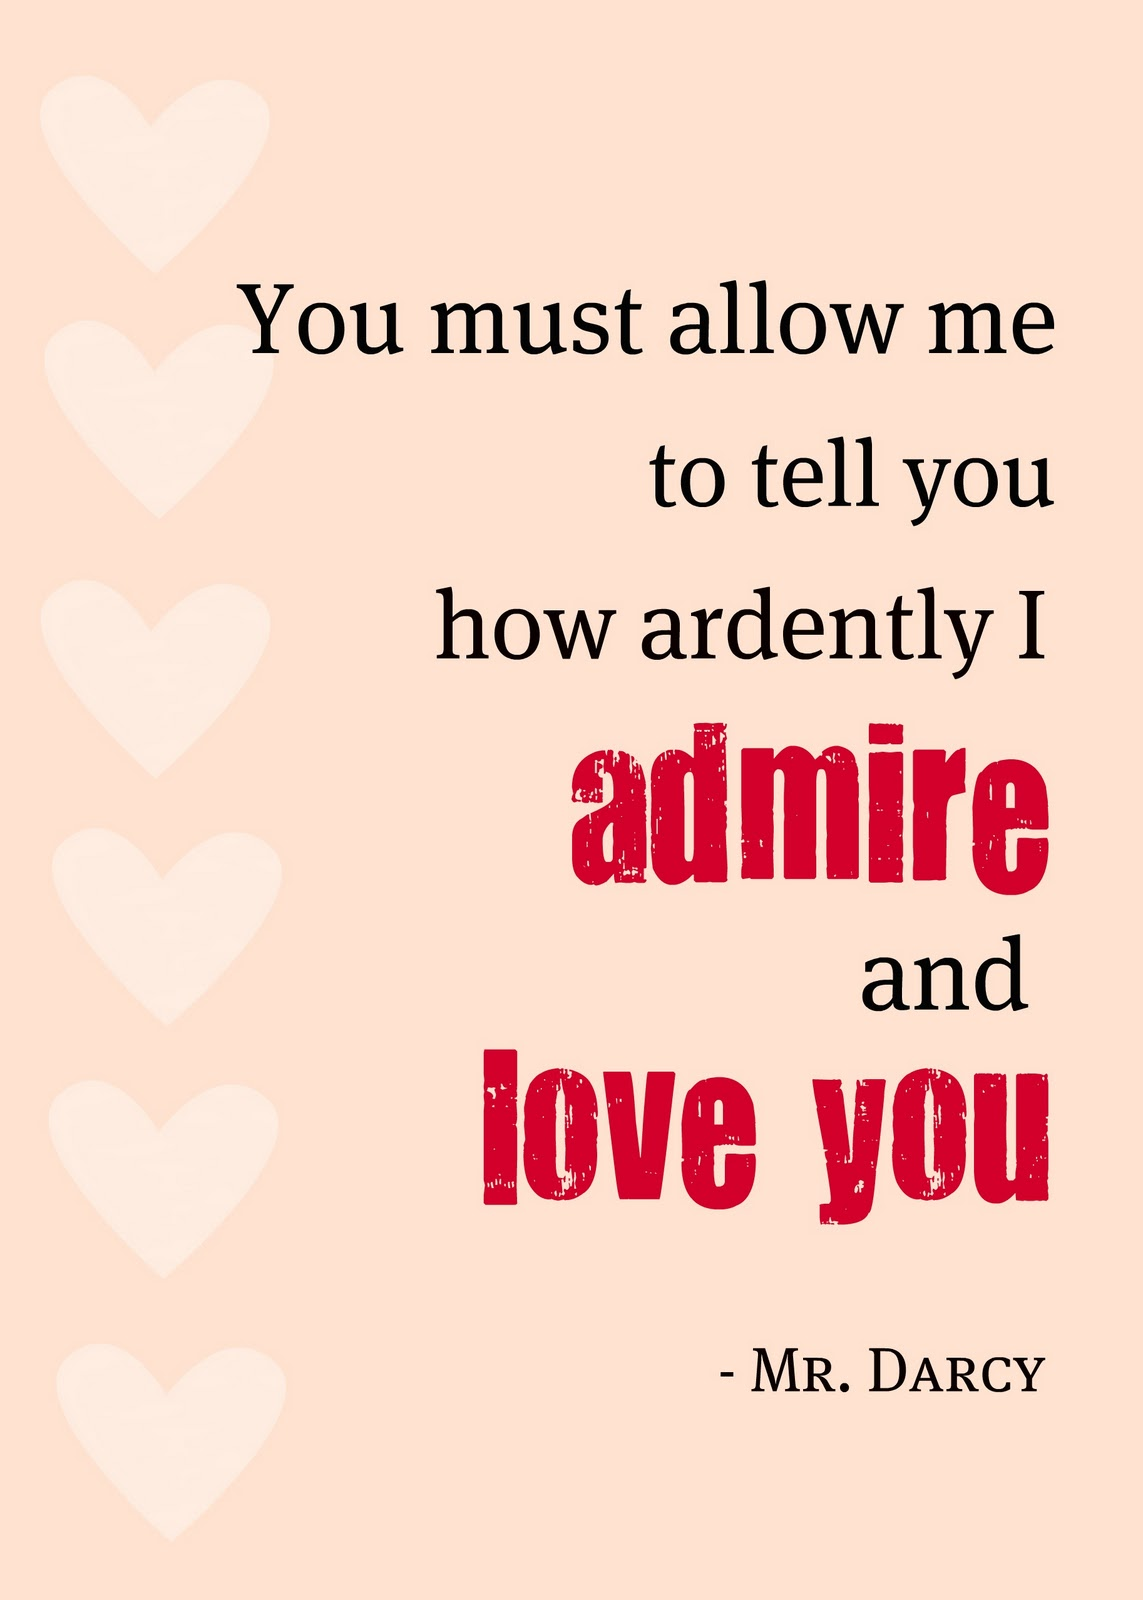 Secret Admirer Quotes Love Quotes For Her Secret Admirer Secret Love Poems For Him